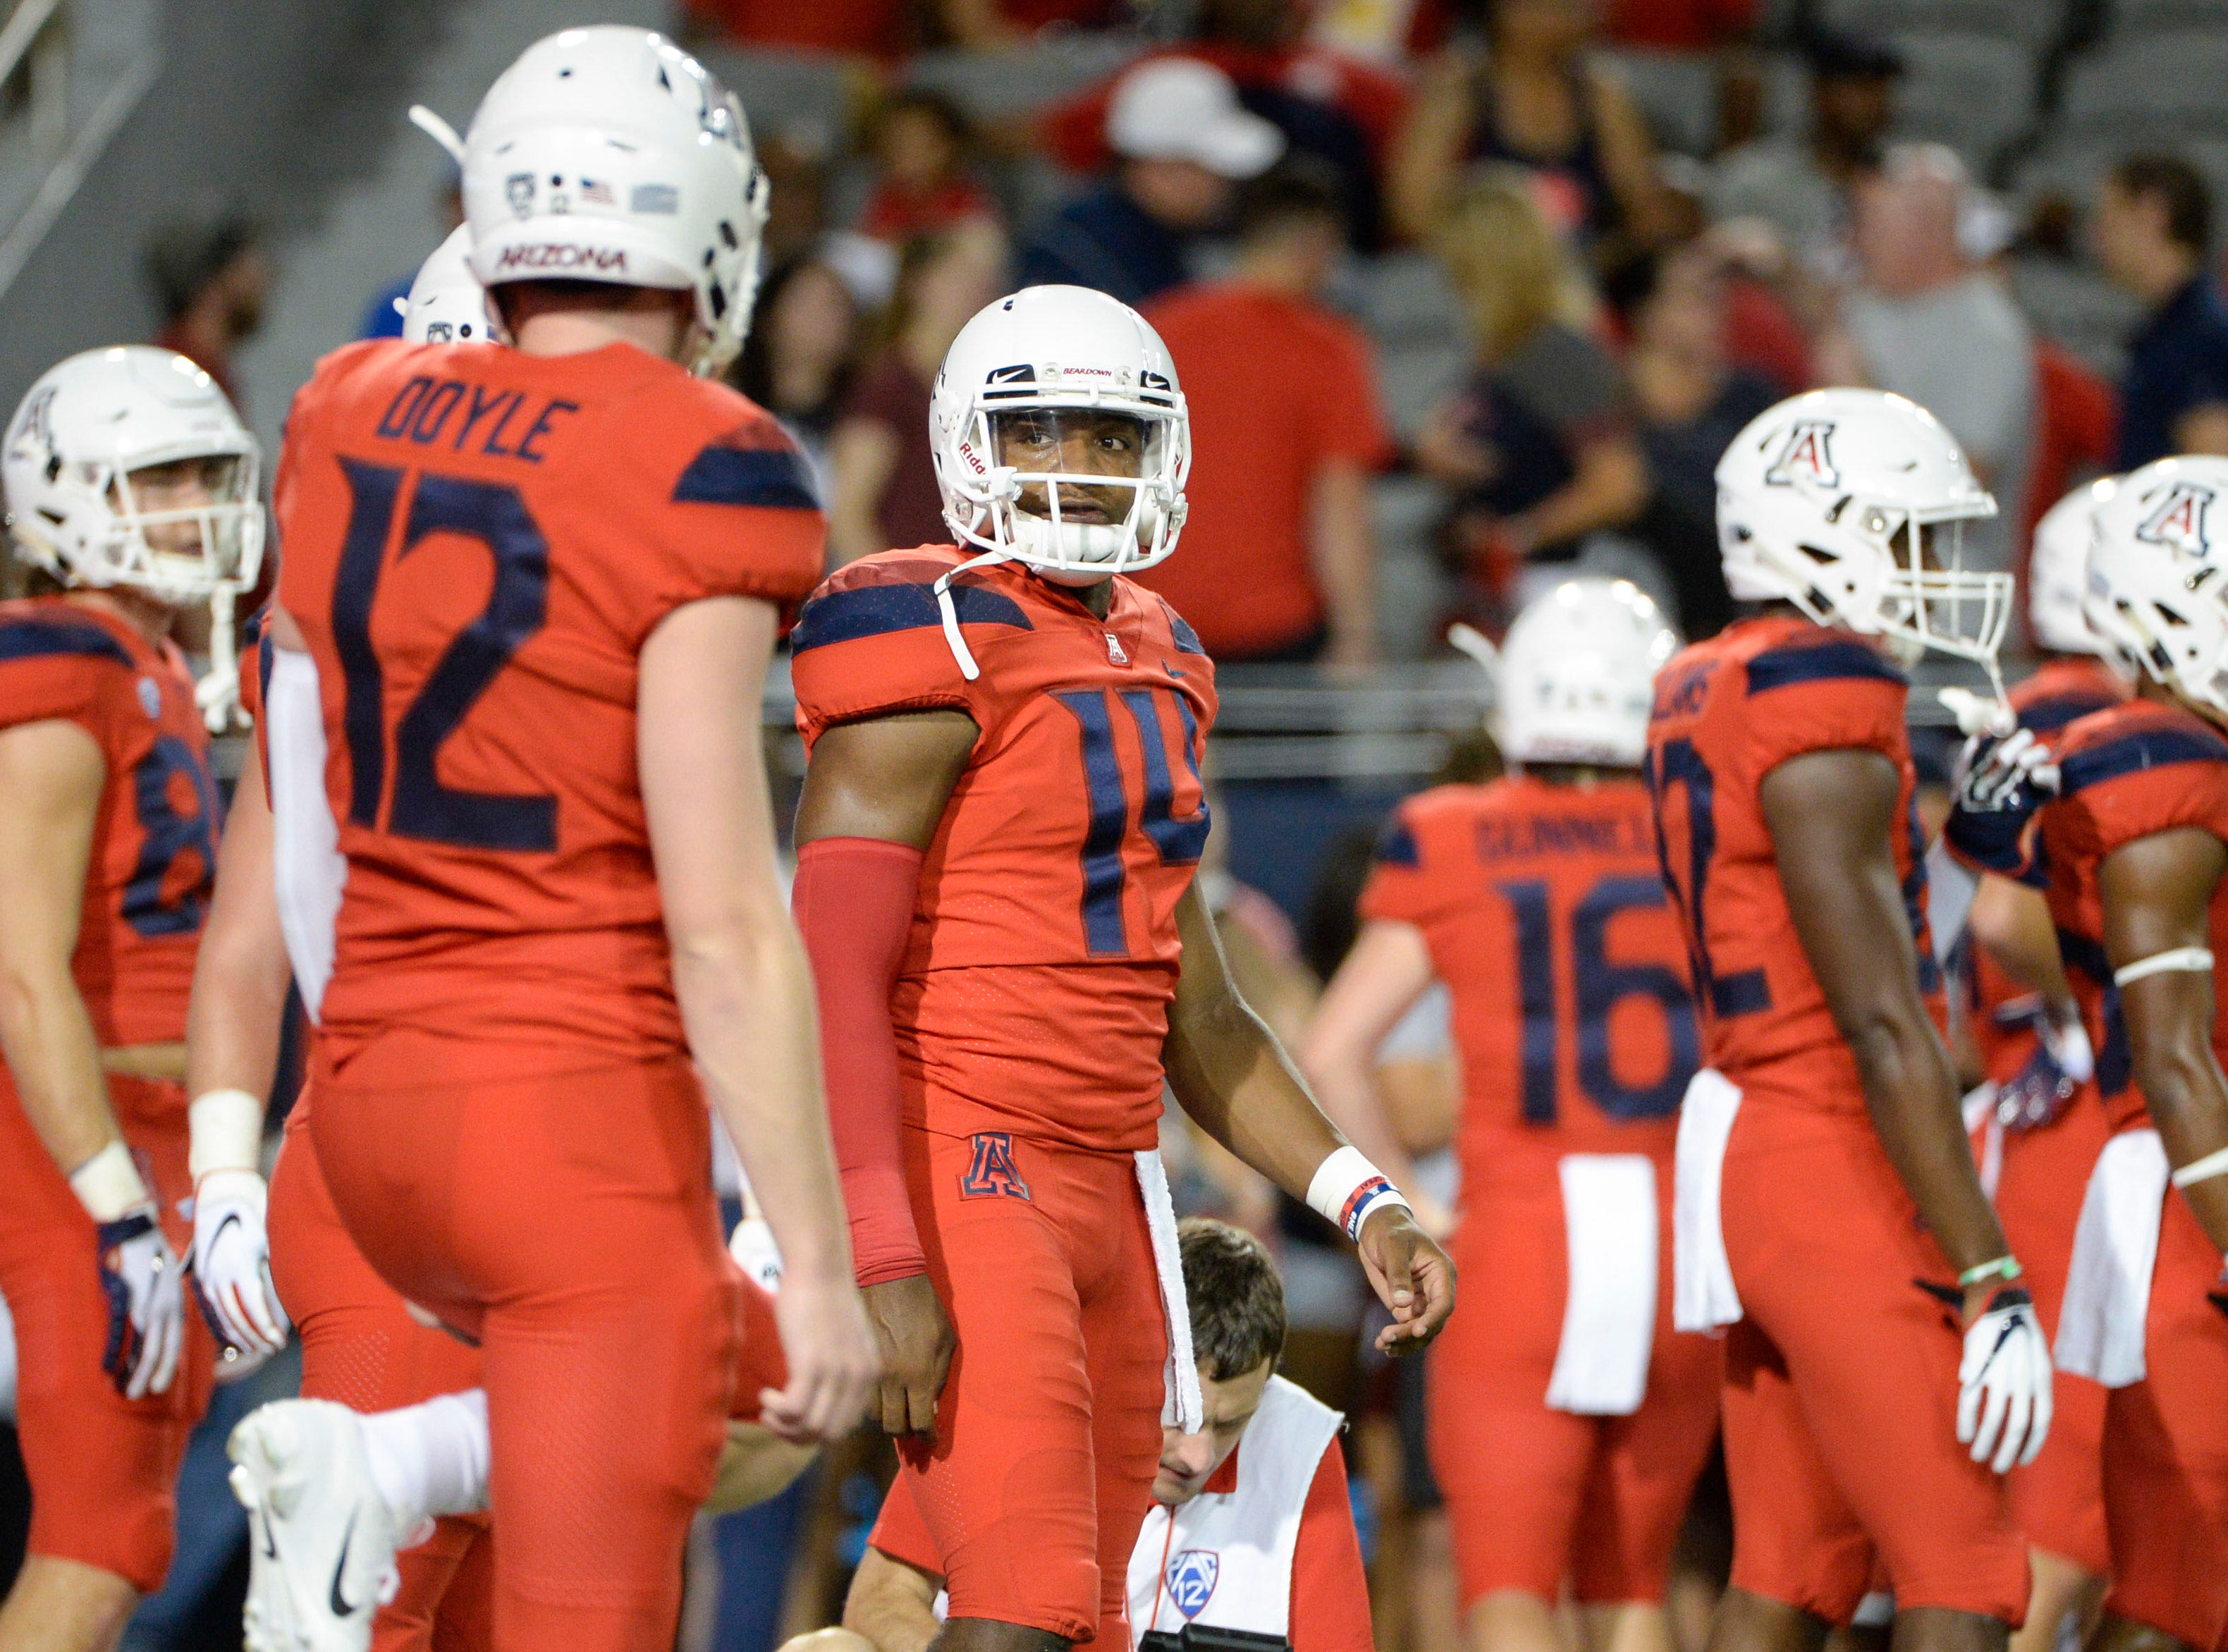 Sep 1, 2018; Tucson, AZ, USA; Arizona Wildcats quarterback Khalil Tate (14) warms up before playing the Brigham Young Cougars at Arizona Stadium.